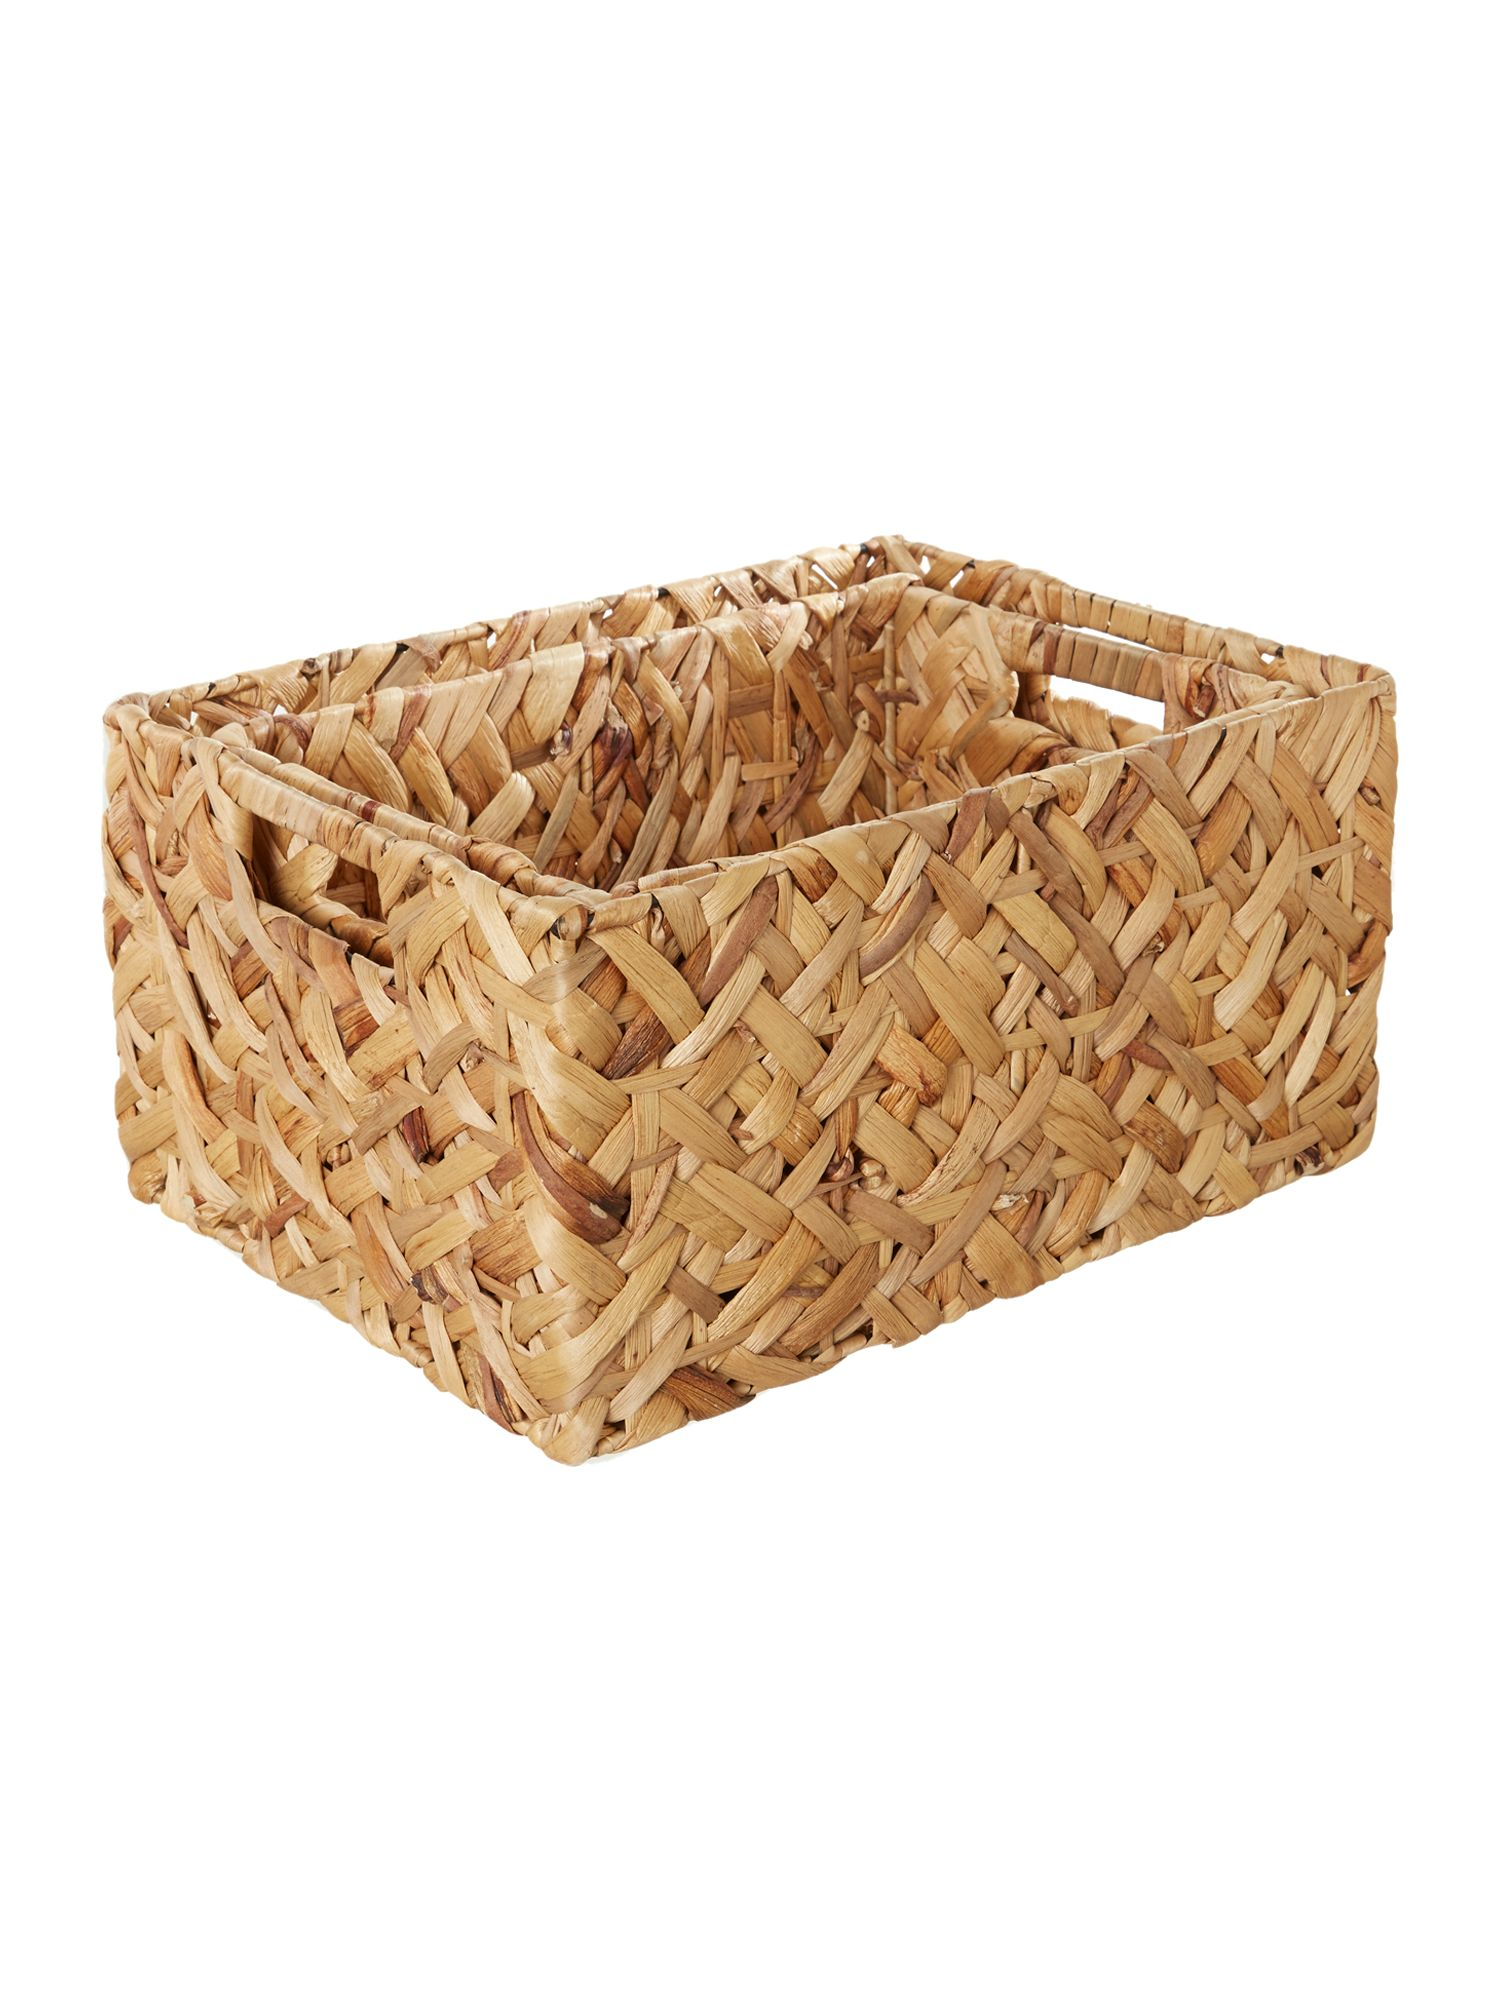 Set of 2 natural water hyacinth baskets